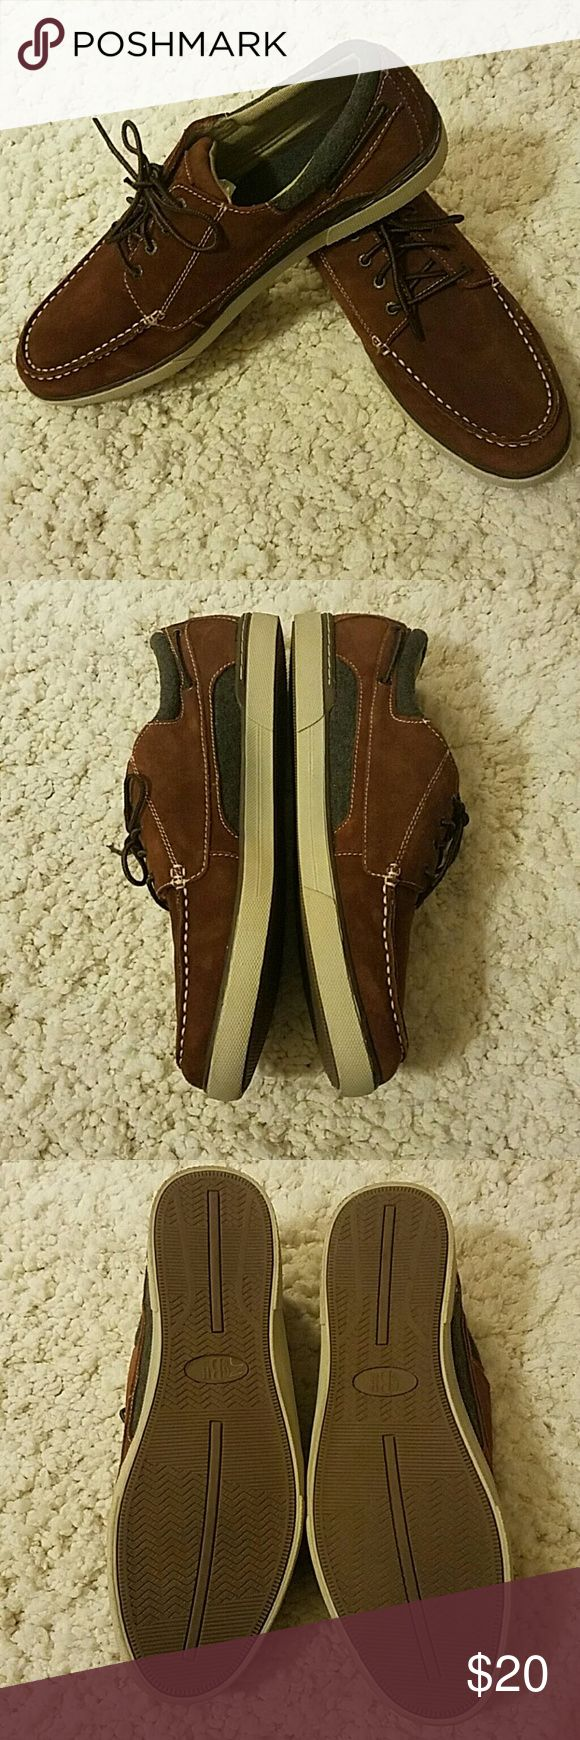 """G.H. BASS MENS BOAT SHOE These GH. Bass """"Oliver"""" boat shoes are NWOT.  BROWN WITH GRAY ACCENTS SIZE 13M NO BOX GH bass & Company Shoes Boat Shoes"""